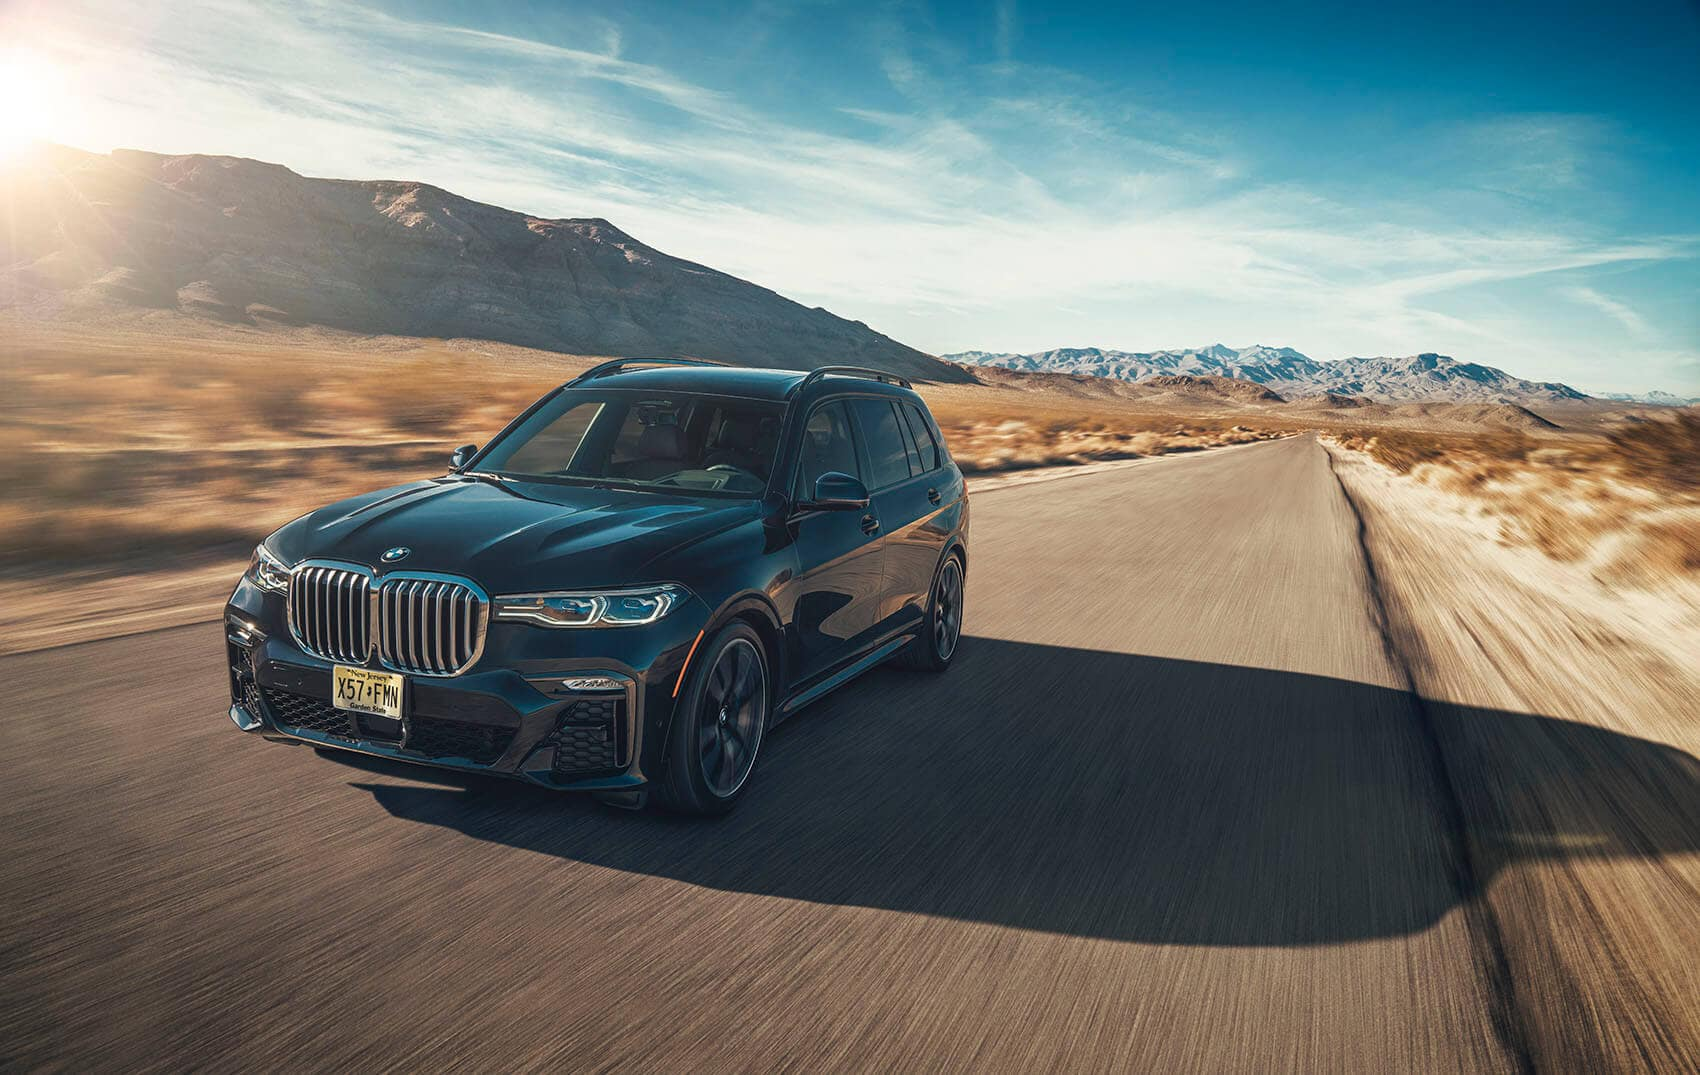 BMW X7 TwinPower